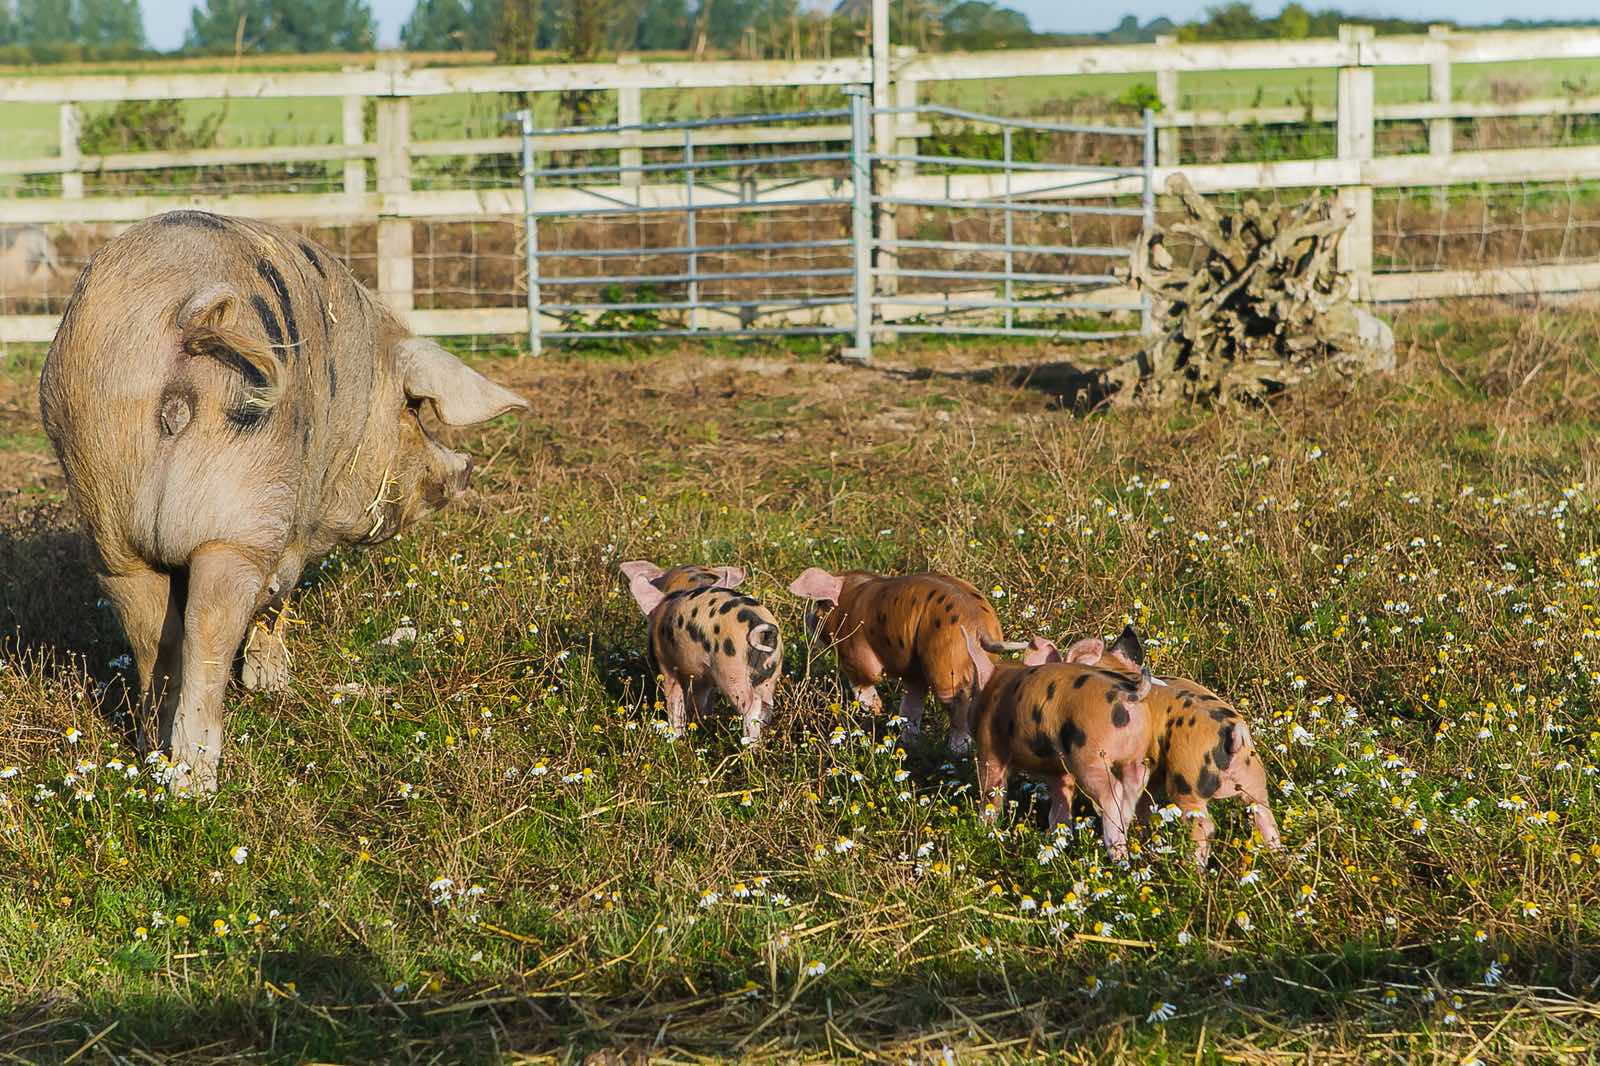 A Pig with her littler of piglets